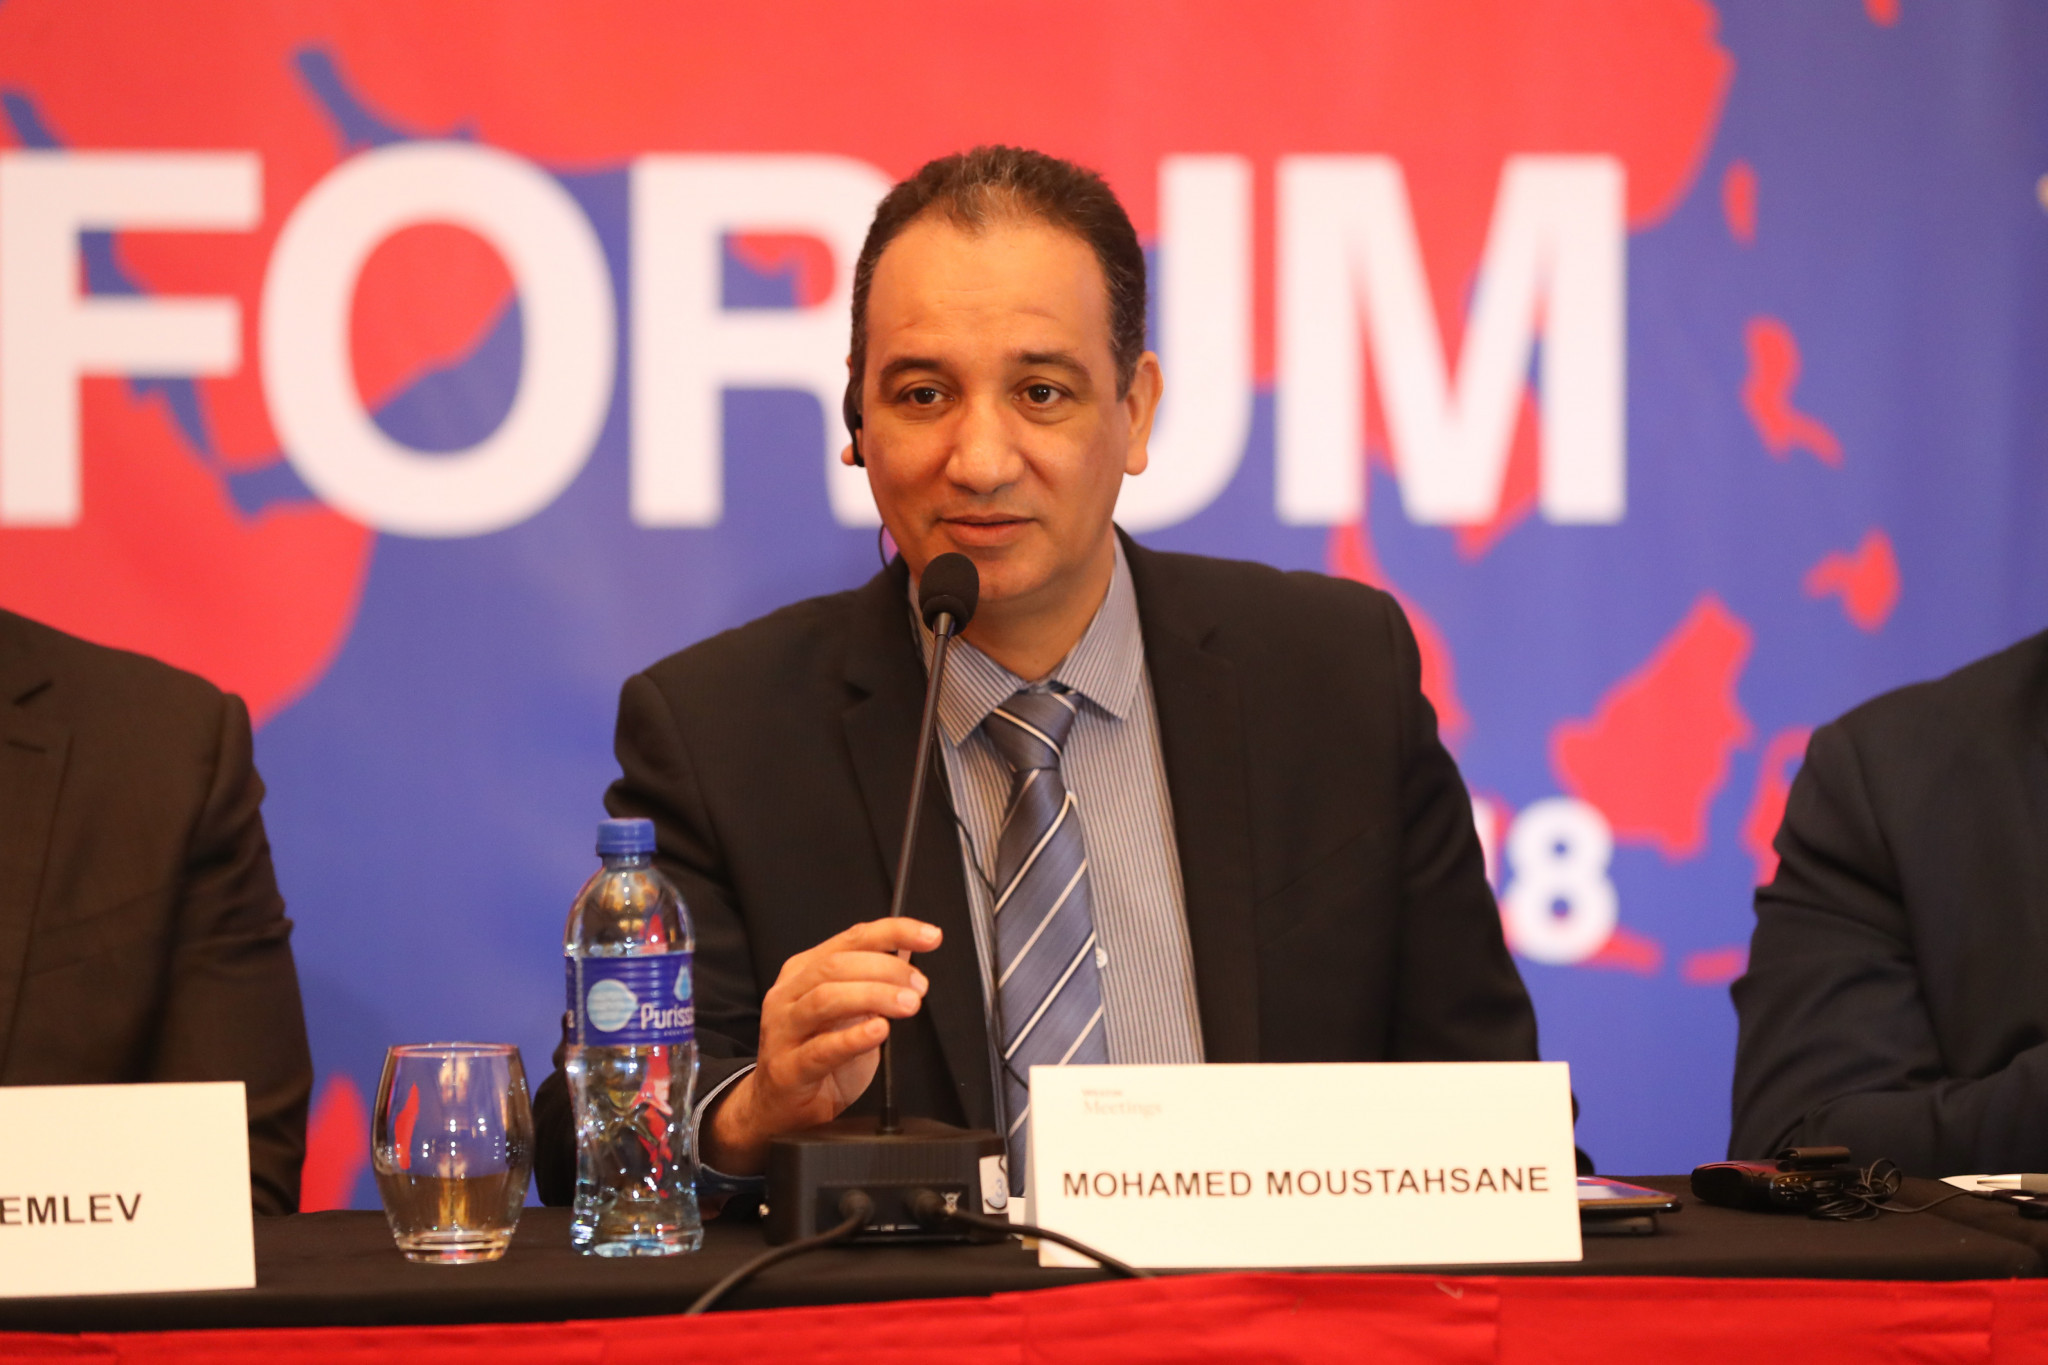 AIBA Interim President Mohamed Moustahsane is one of six candidates running against Umar Kremlev in the election ©AIBA